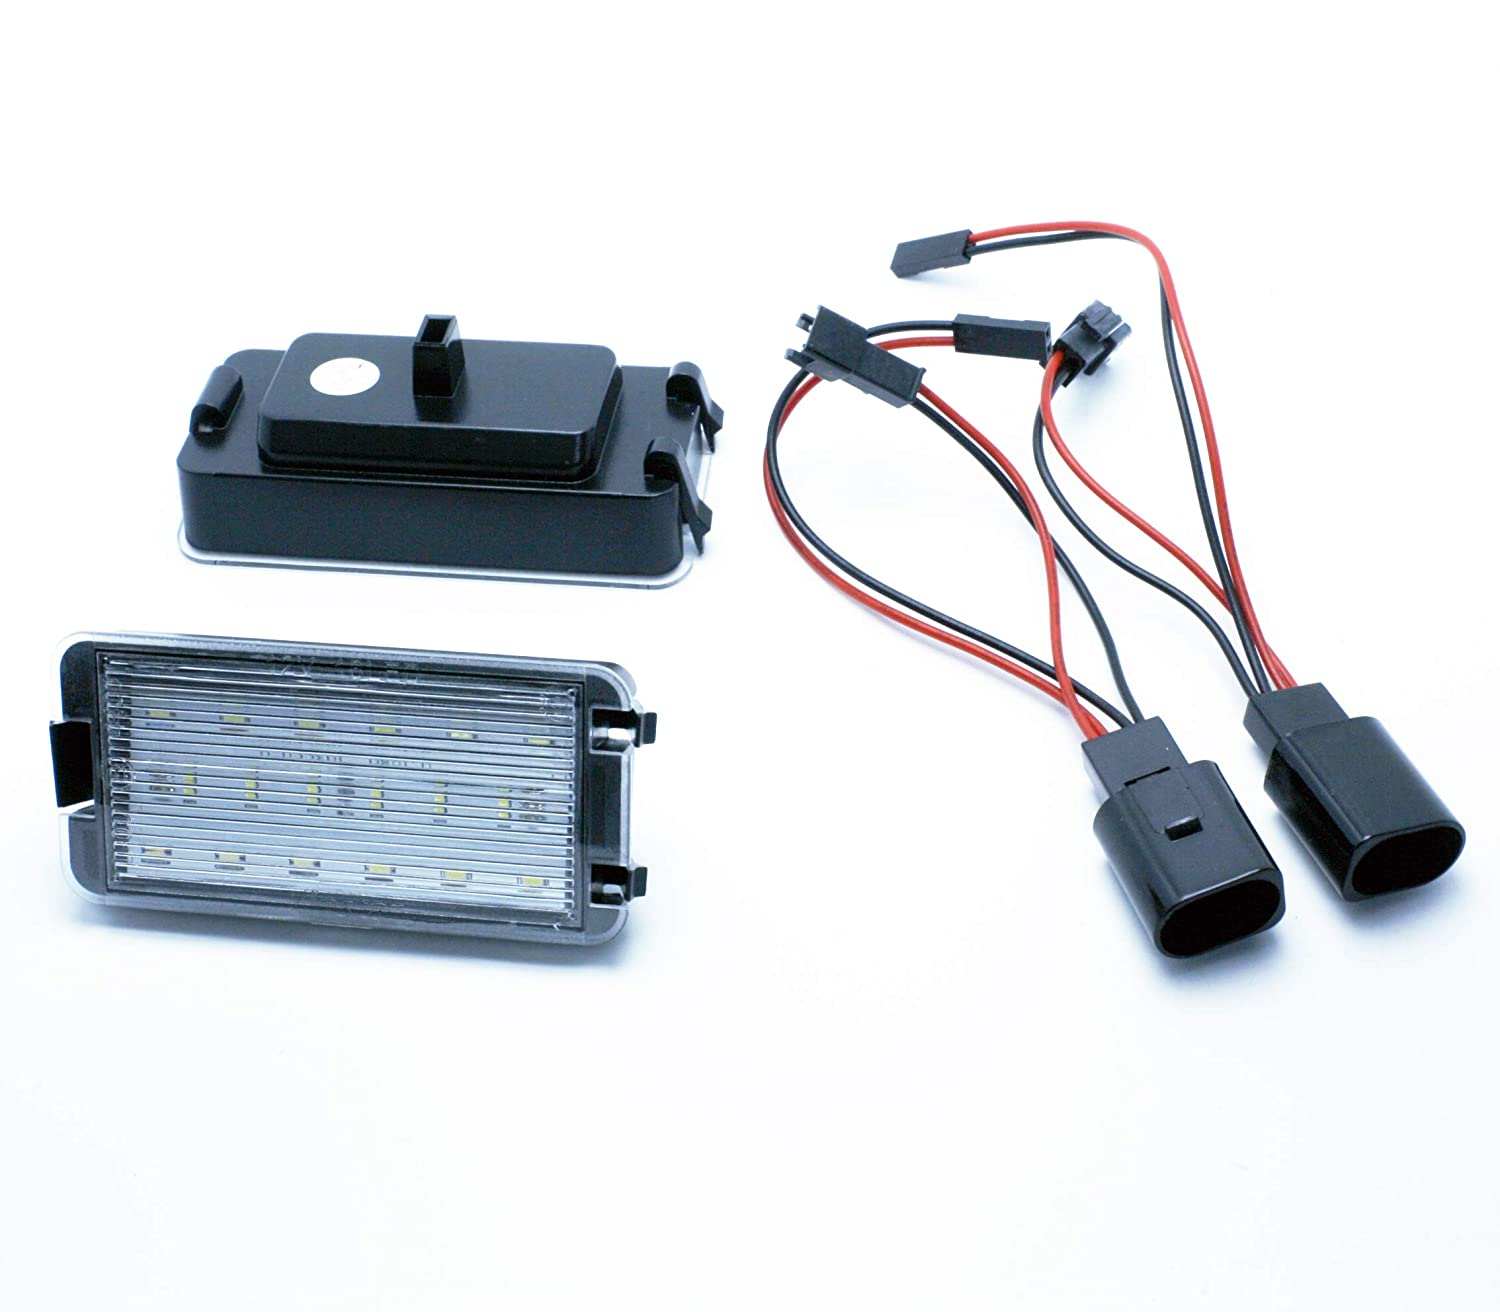 VINSTAR 2X Luces para MATRICULA LED License Number Plate Light Seat Leon I MK1 99: Amazon.es: Coche y moto